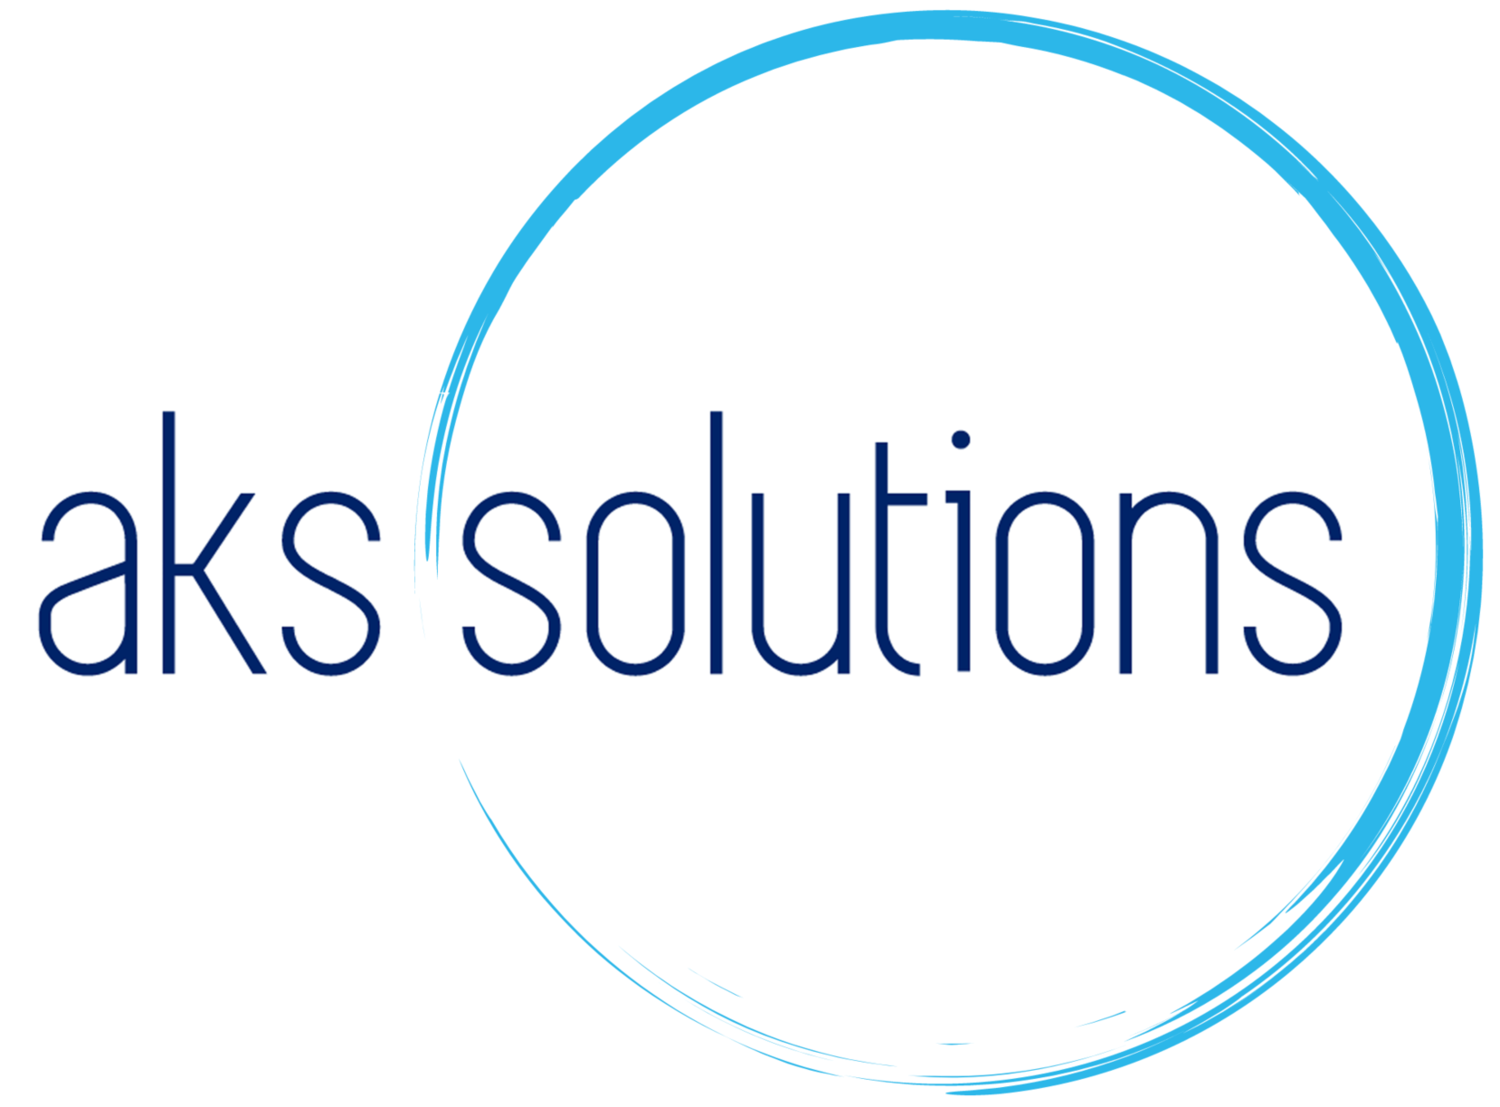 aks solutions